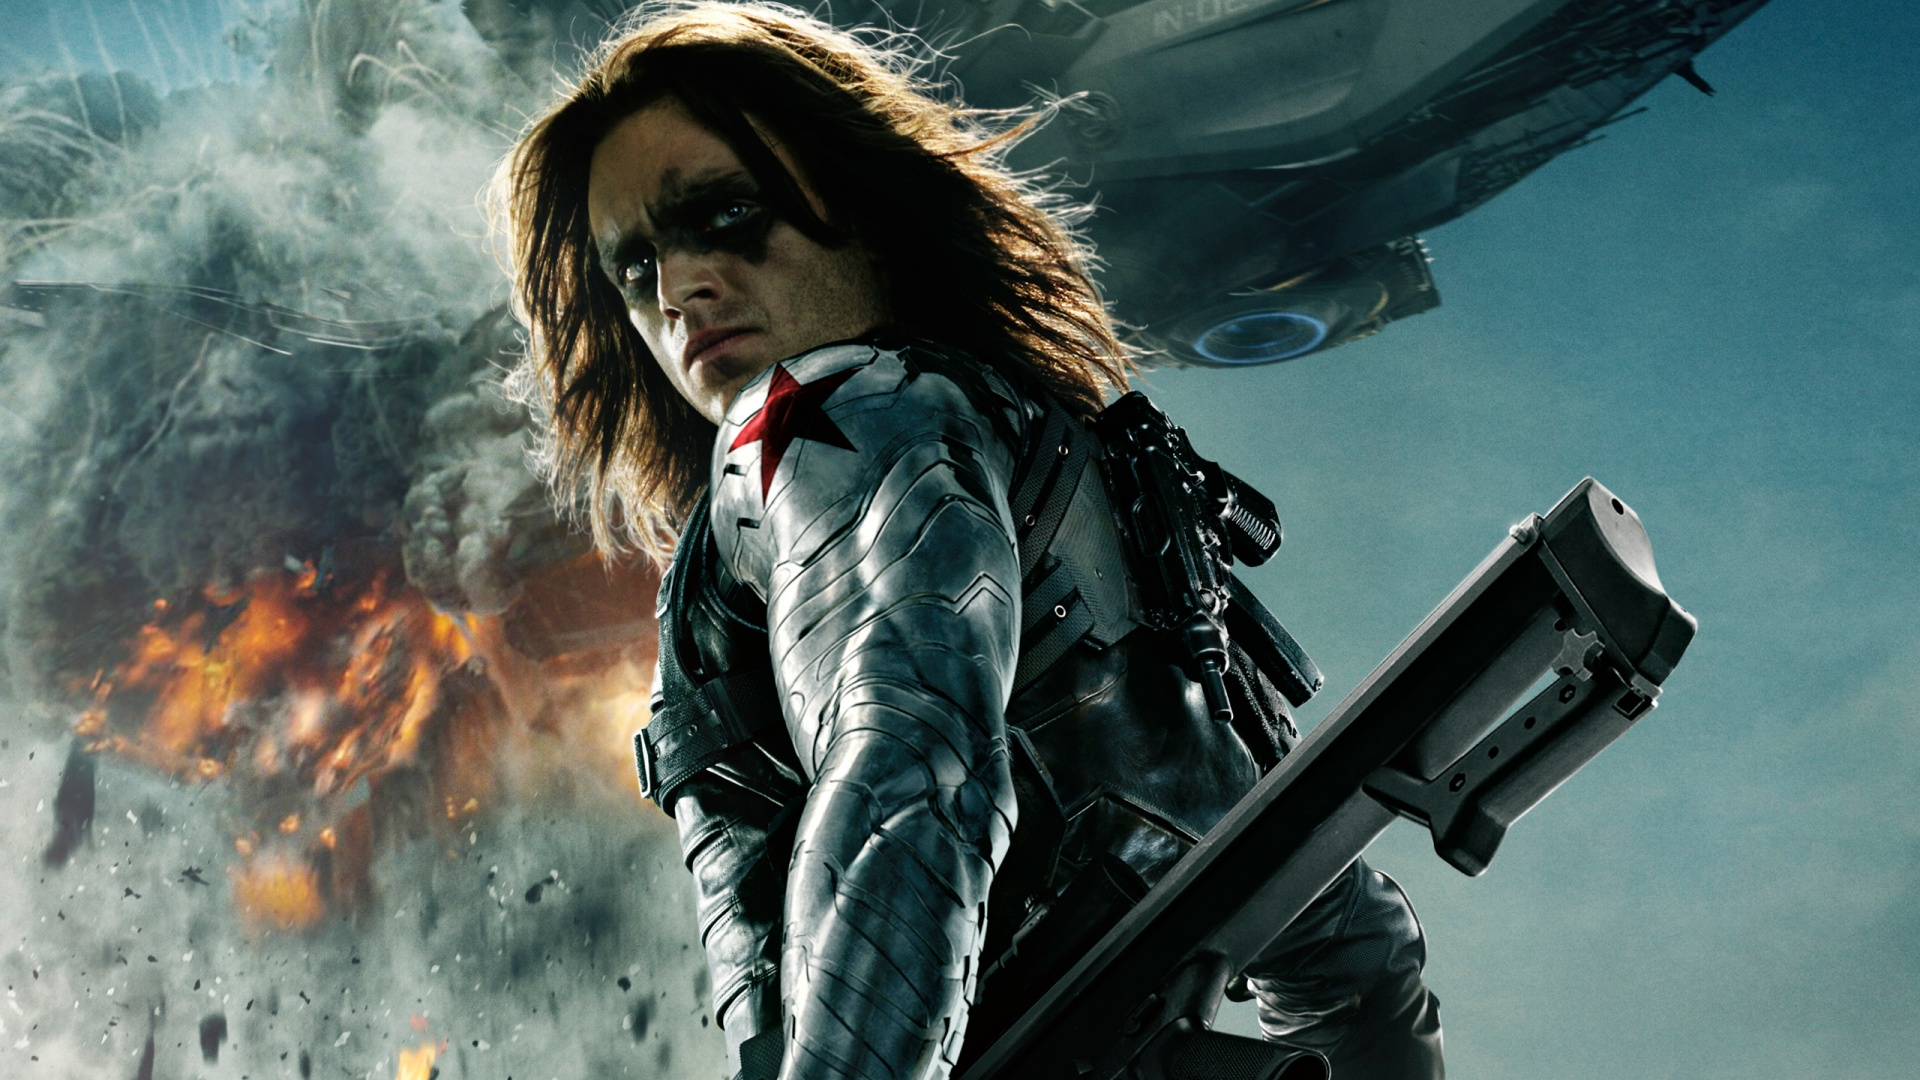 Marvel Live Action Movies Images Captain America Winter Soldier HD Wallpaper And Background Photos